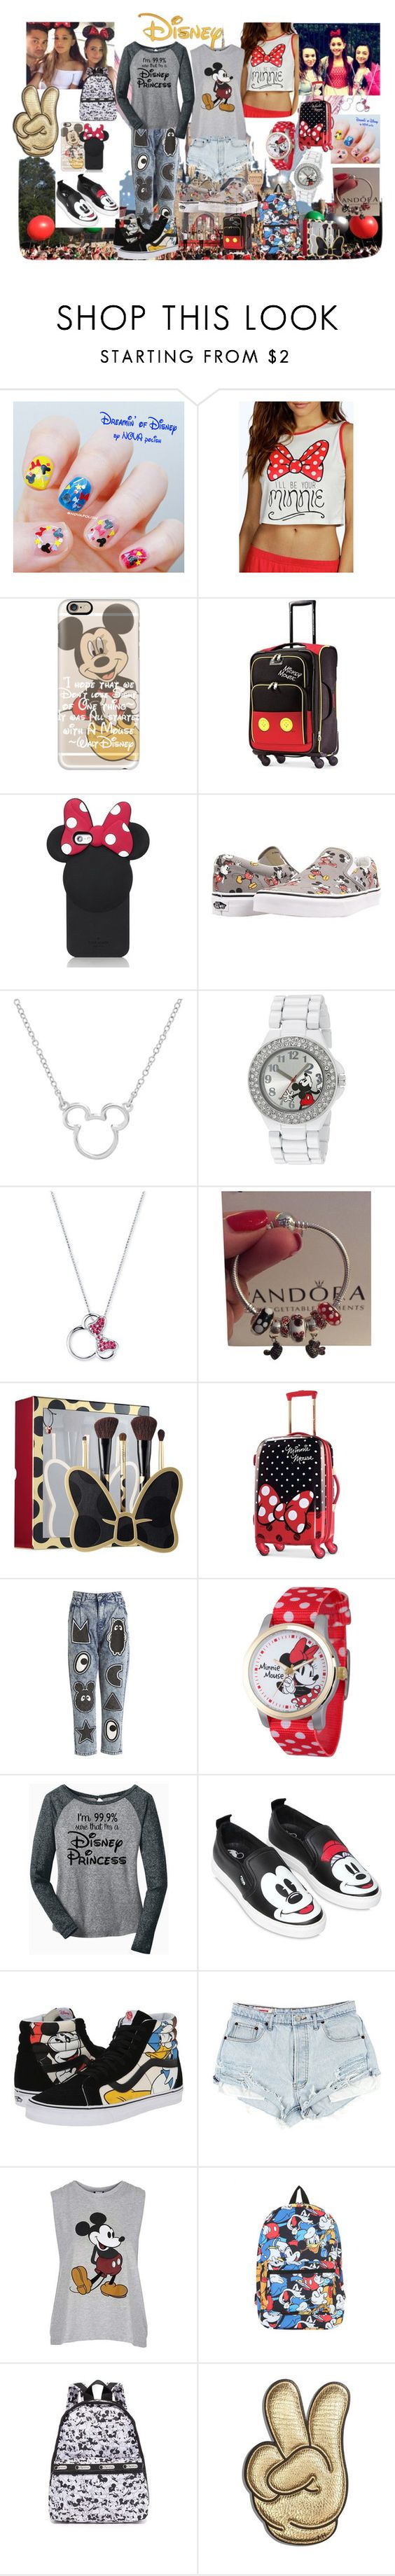 """""""vans"""" by ilenia-aretusi ❤ liked on Polyvore featuring Disney, Casetify, Kate Spade, Vans, Pandora, Sephora Collection, Mini Cream, MOA Master of Arts, Topshop and LeSportsac"""